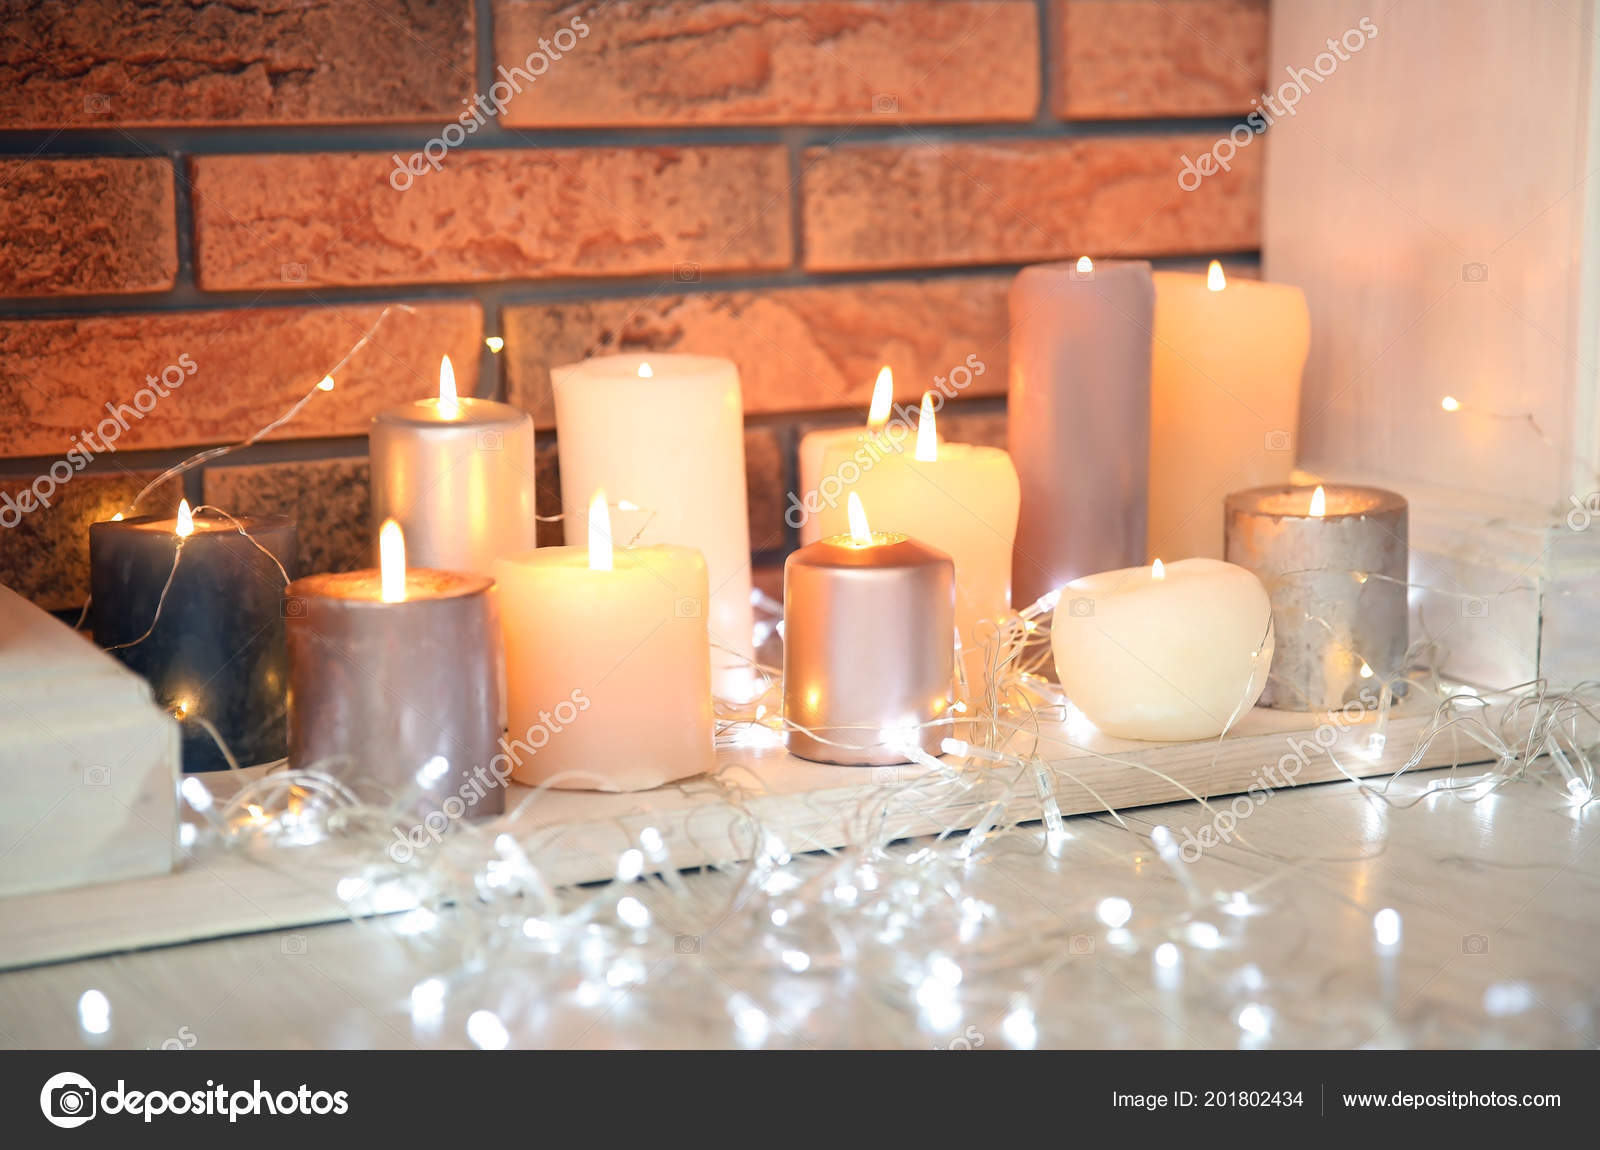 Christmas Lights Decorative Fireplace Candles Indoors Stock